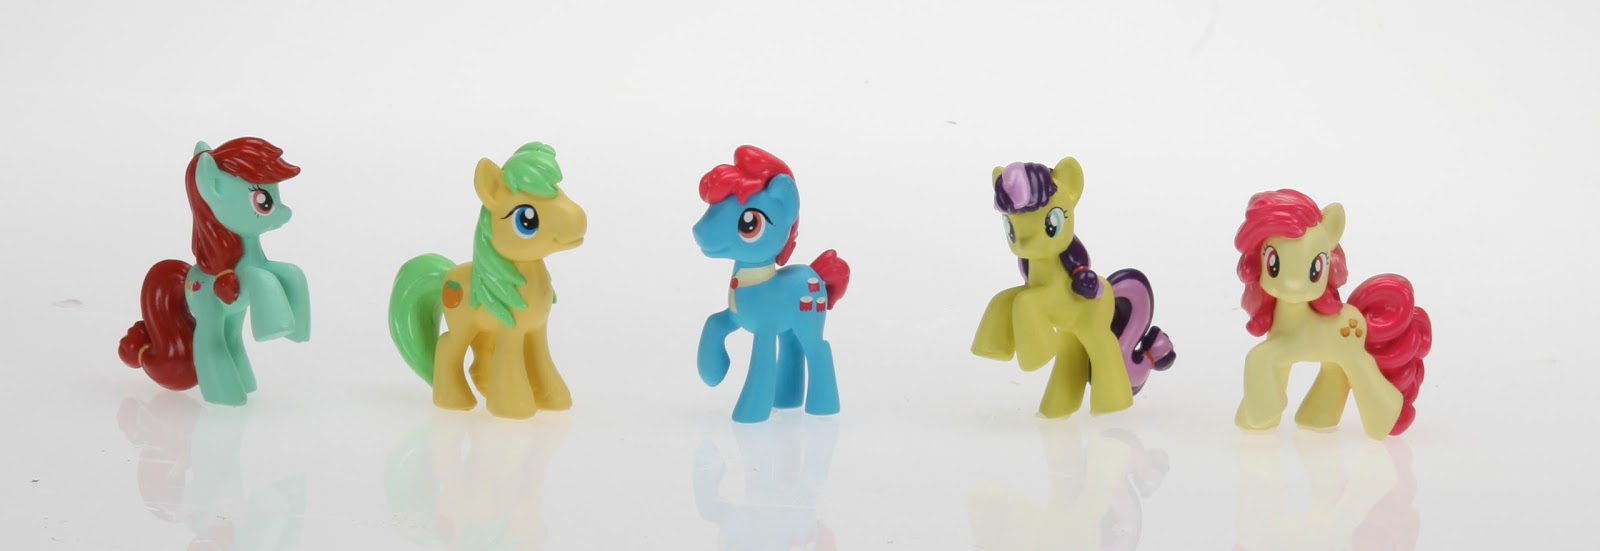 Blind Bag Wave 13 Chase Figures of Candy Apples, Mosely Orange, Apple Bottoms, Lavender Fritter and Apple Bumpkin